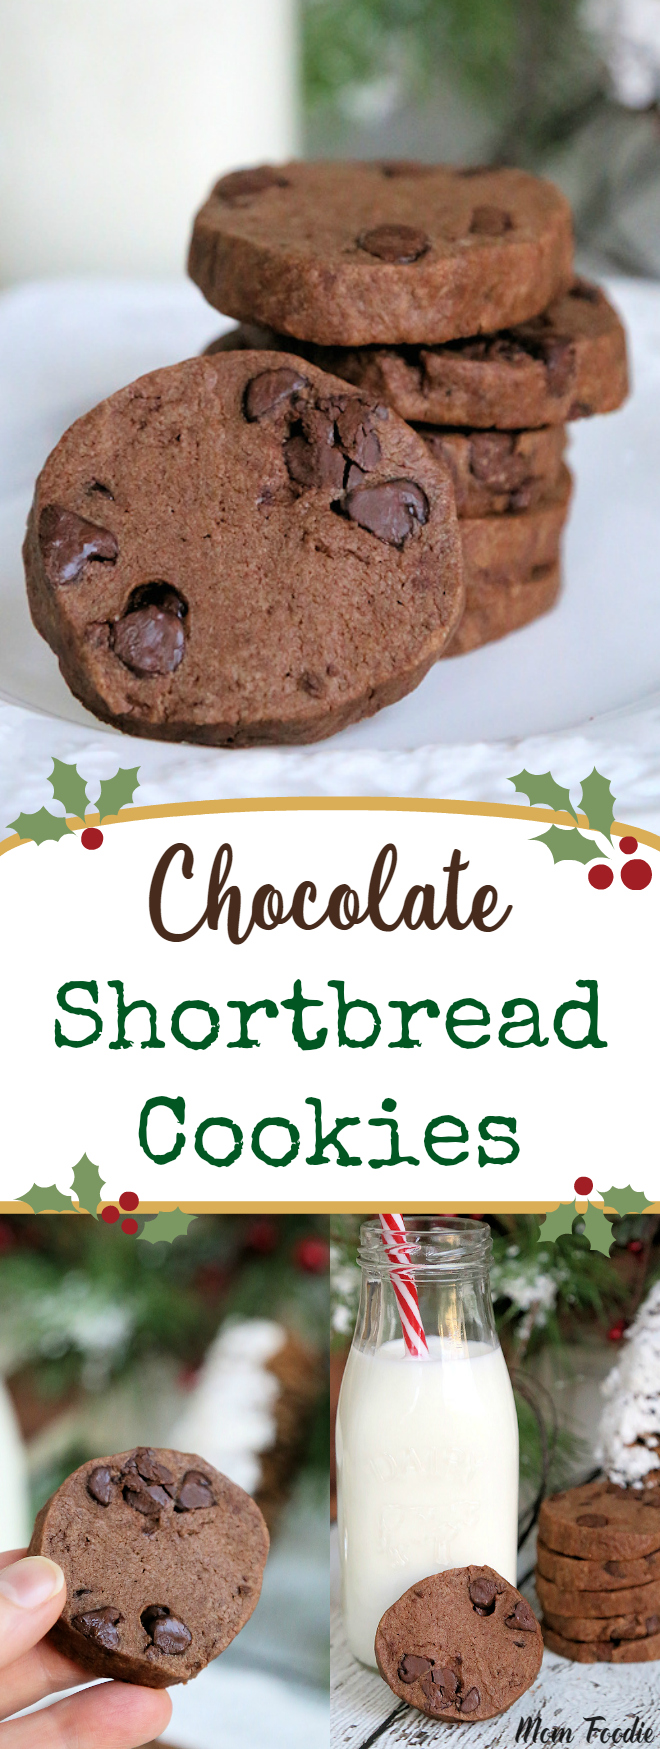 Double Chocolate Shortbread Cookies Recipe #chocolate #shortbread #cookies